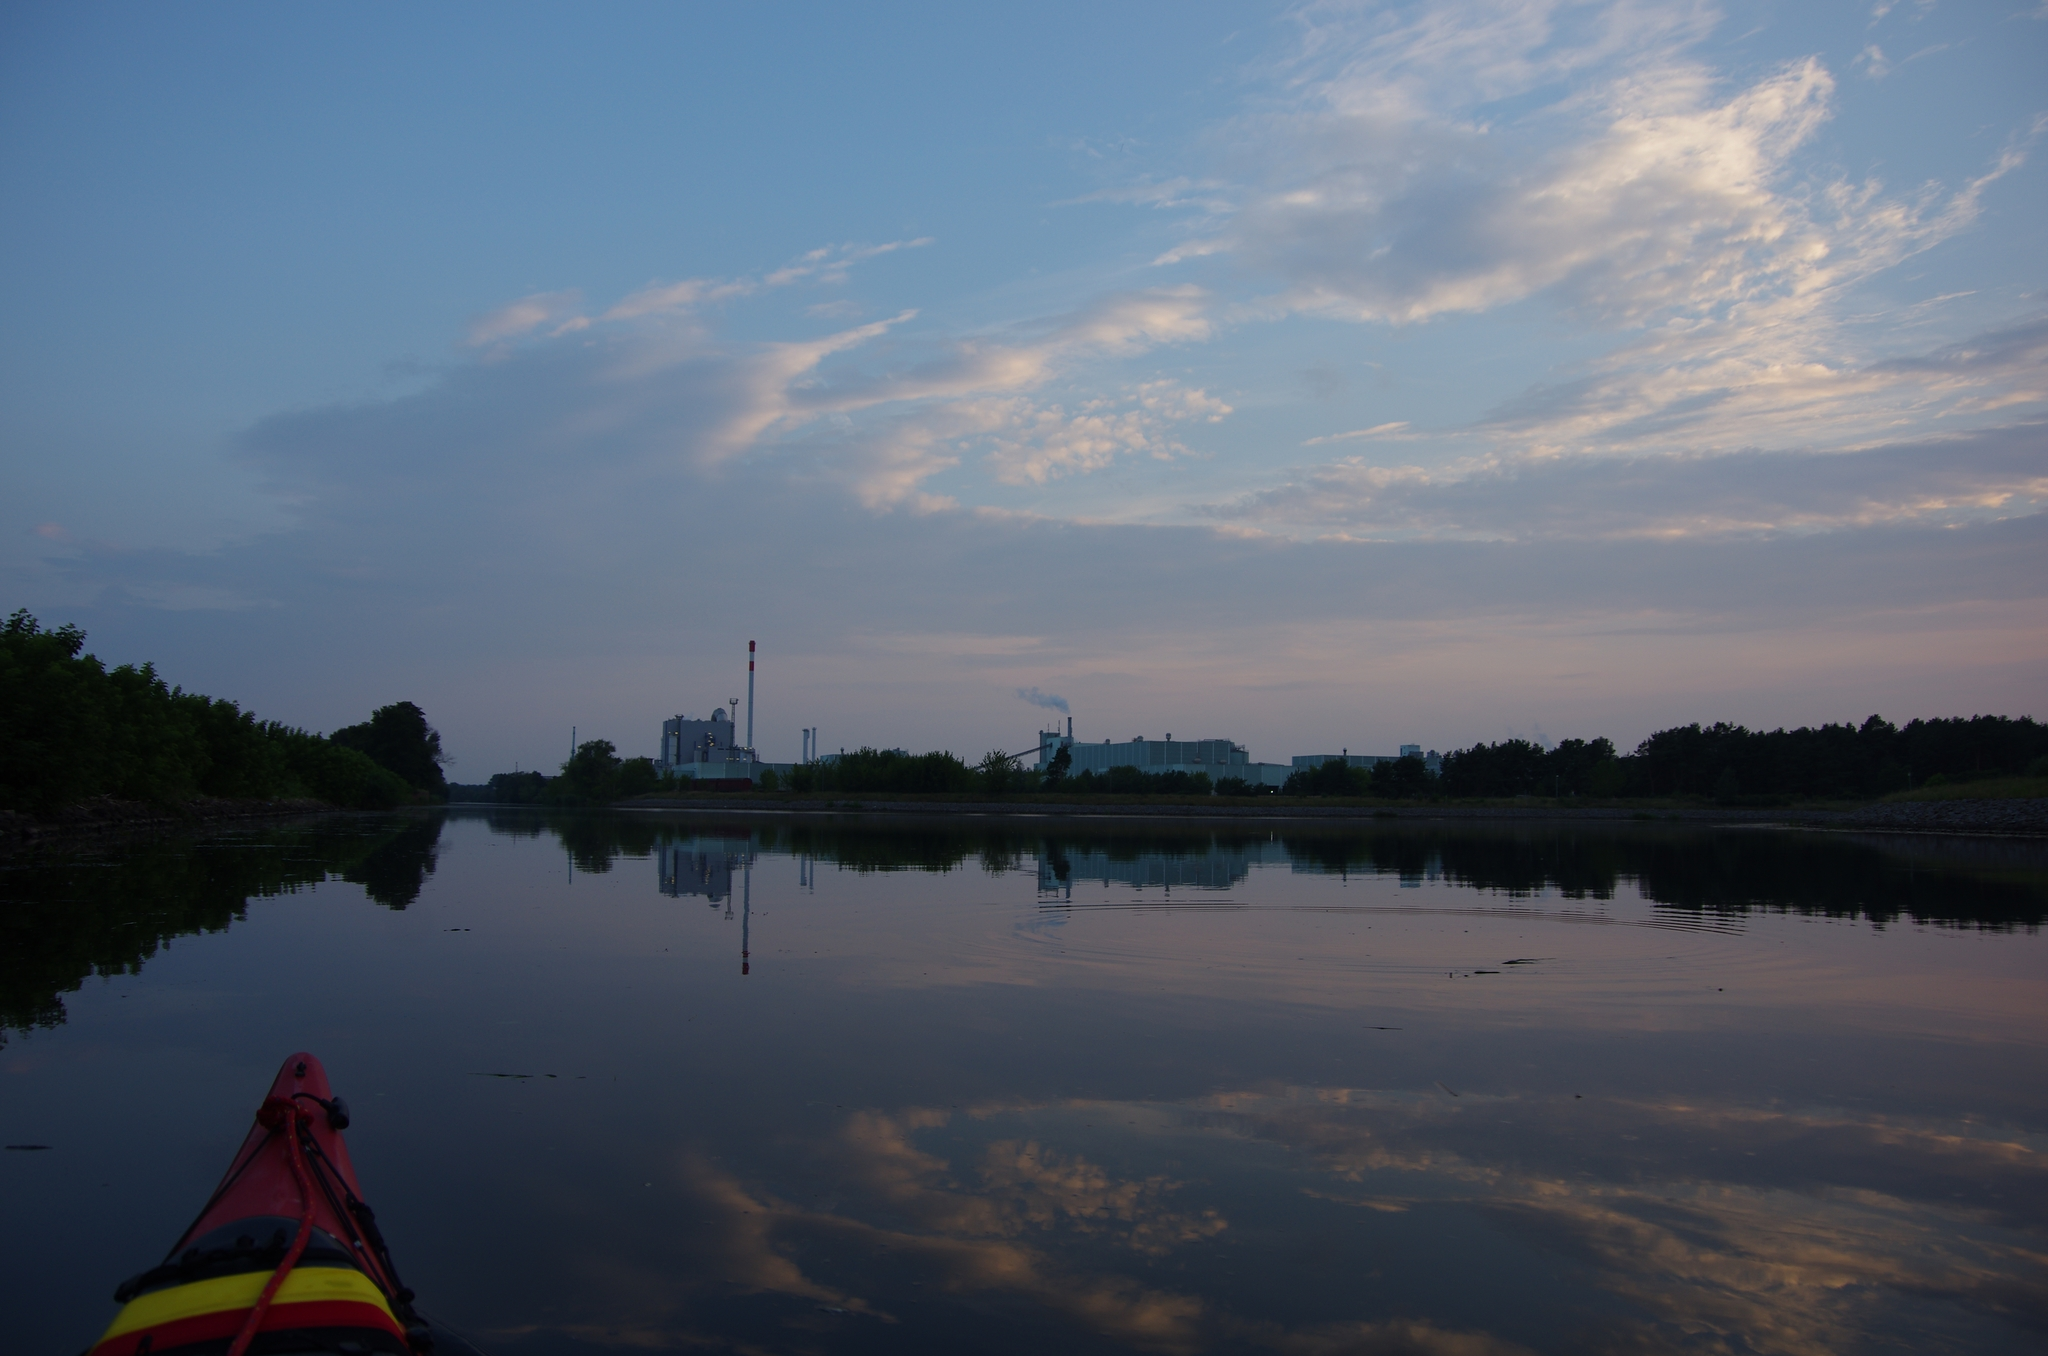 kayaking-odra-east-and-west_19-28-55_25-07-2016